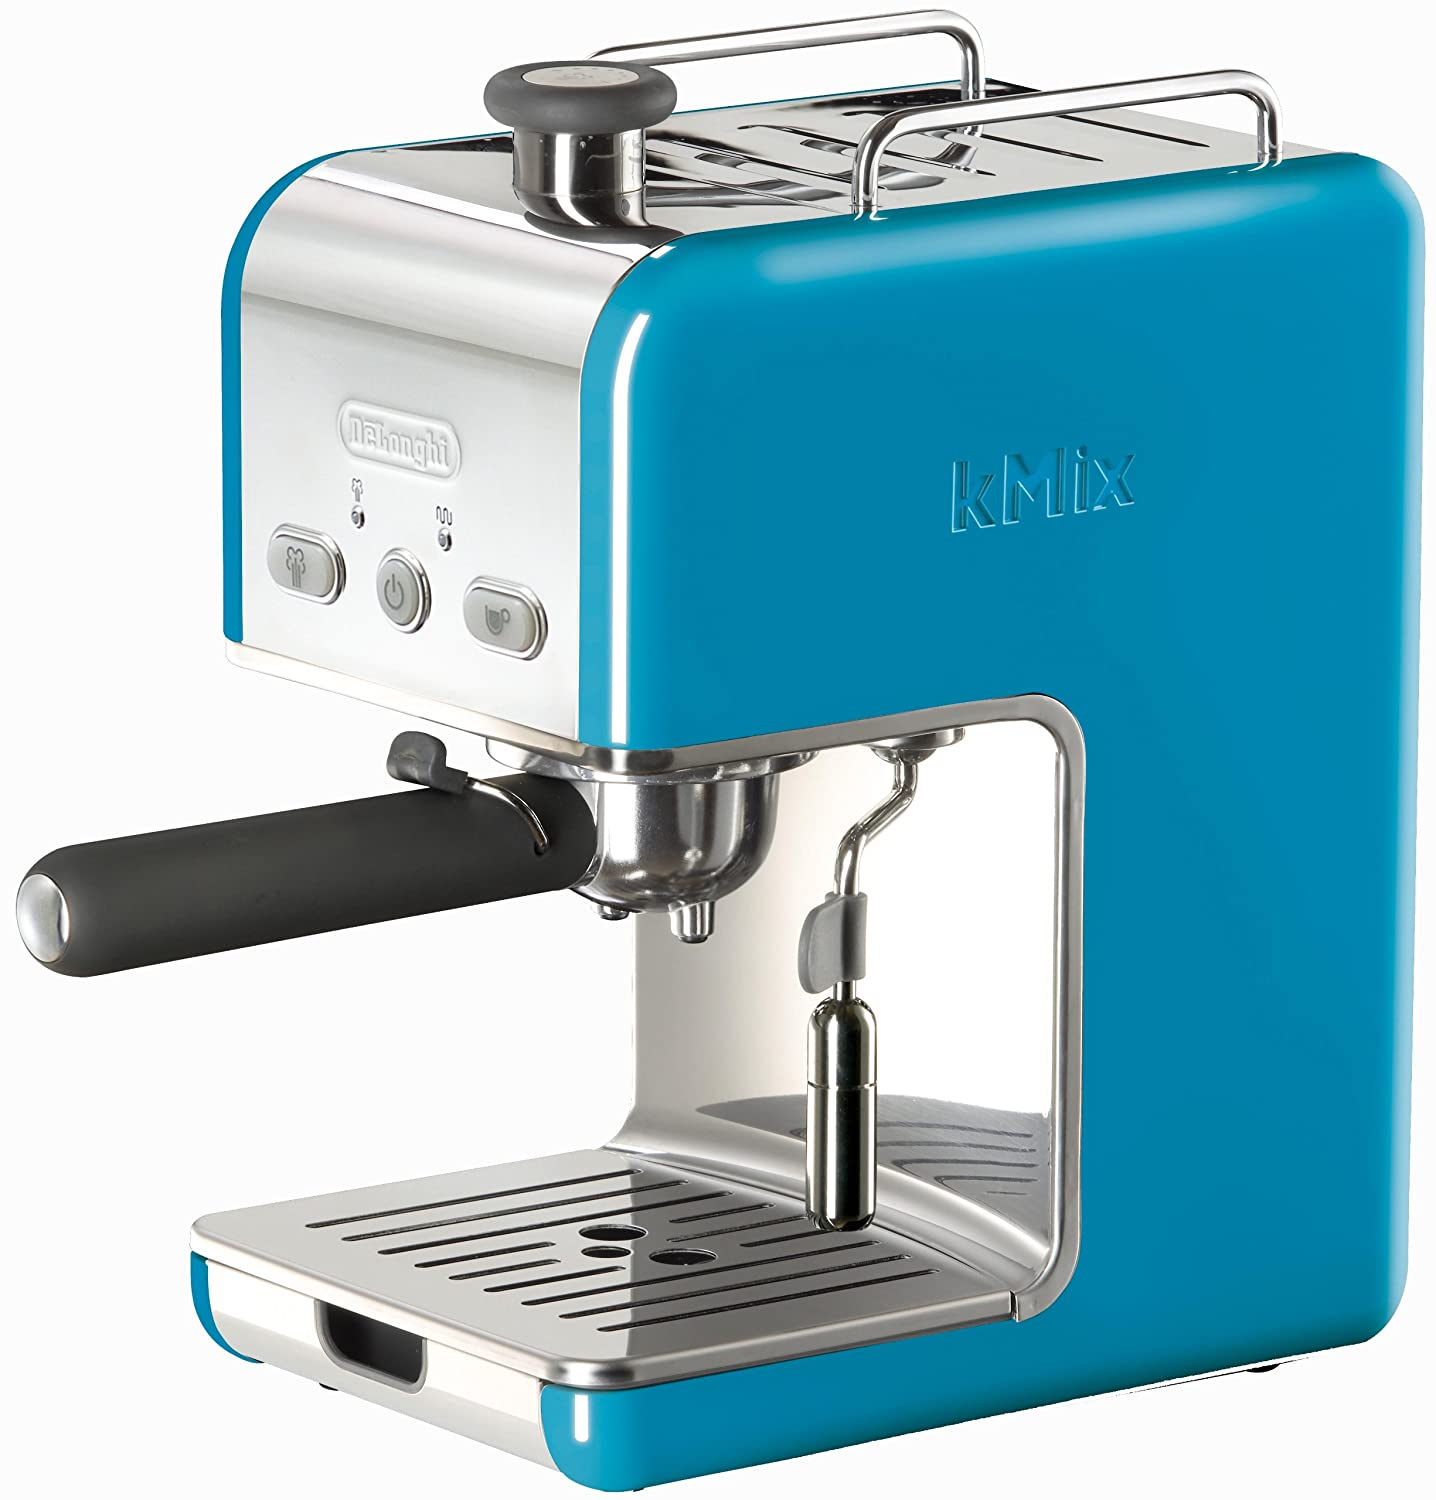 Amazon.com: DeLonghi Kmix 15 Bars Pump Espresso Maker, Blue: Kitchen ...